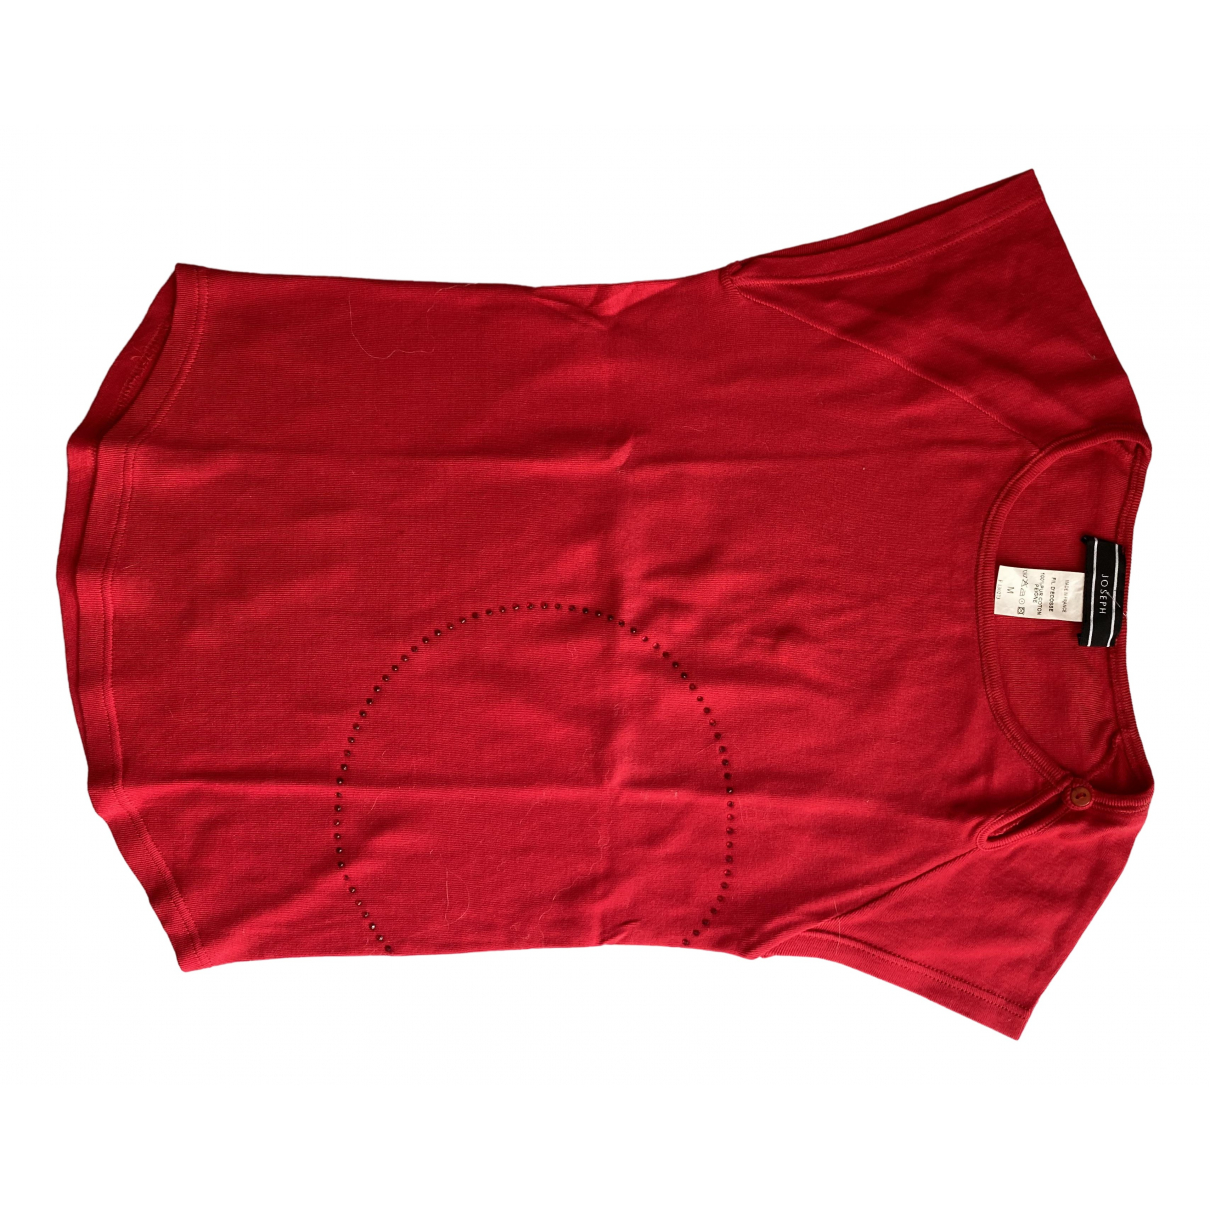 Joseph \N Red Cotton  top for Women 38 FR